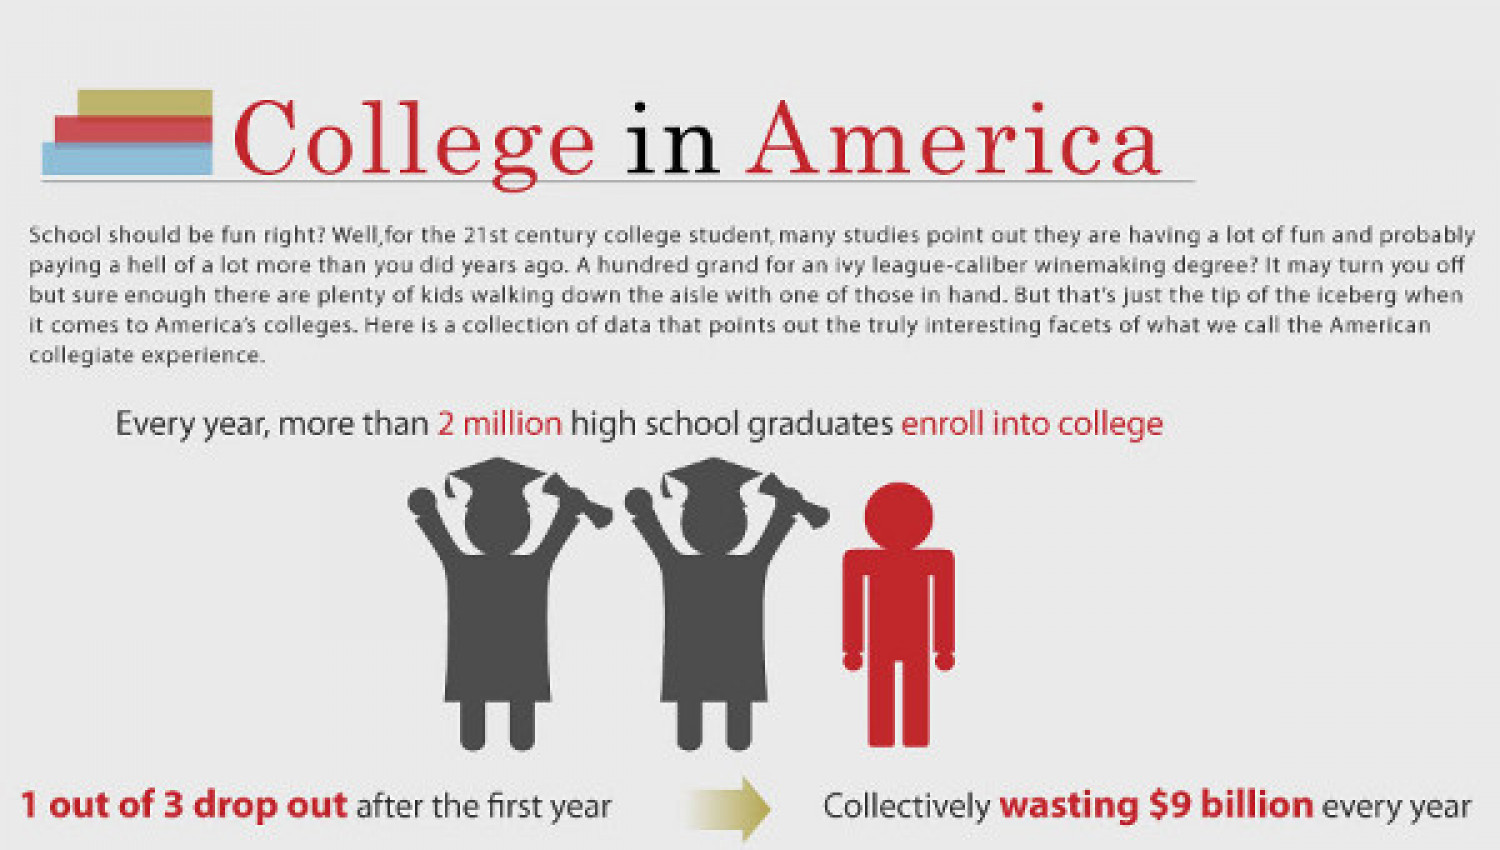 Data and Facts of Colleges in America Infographic